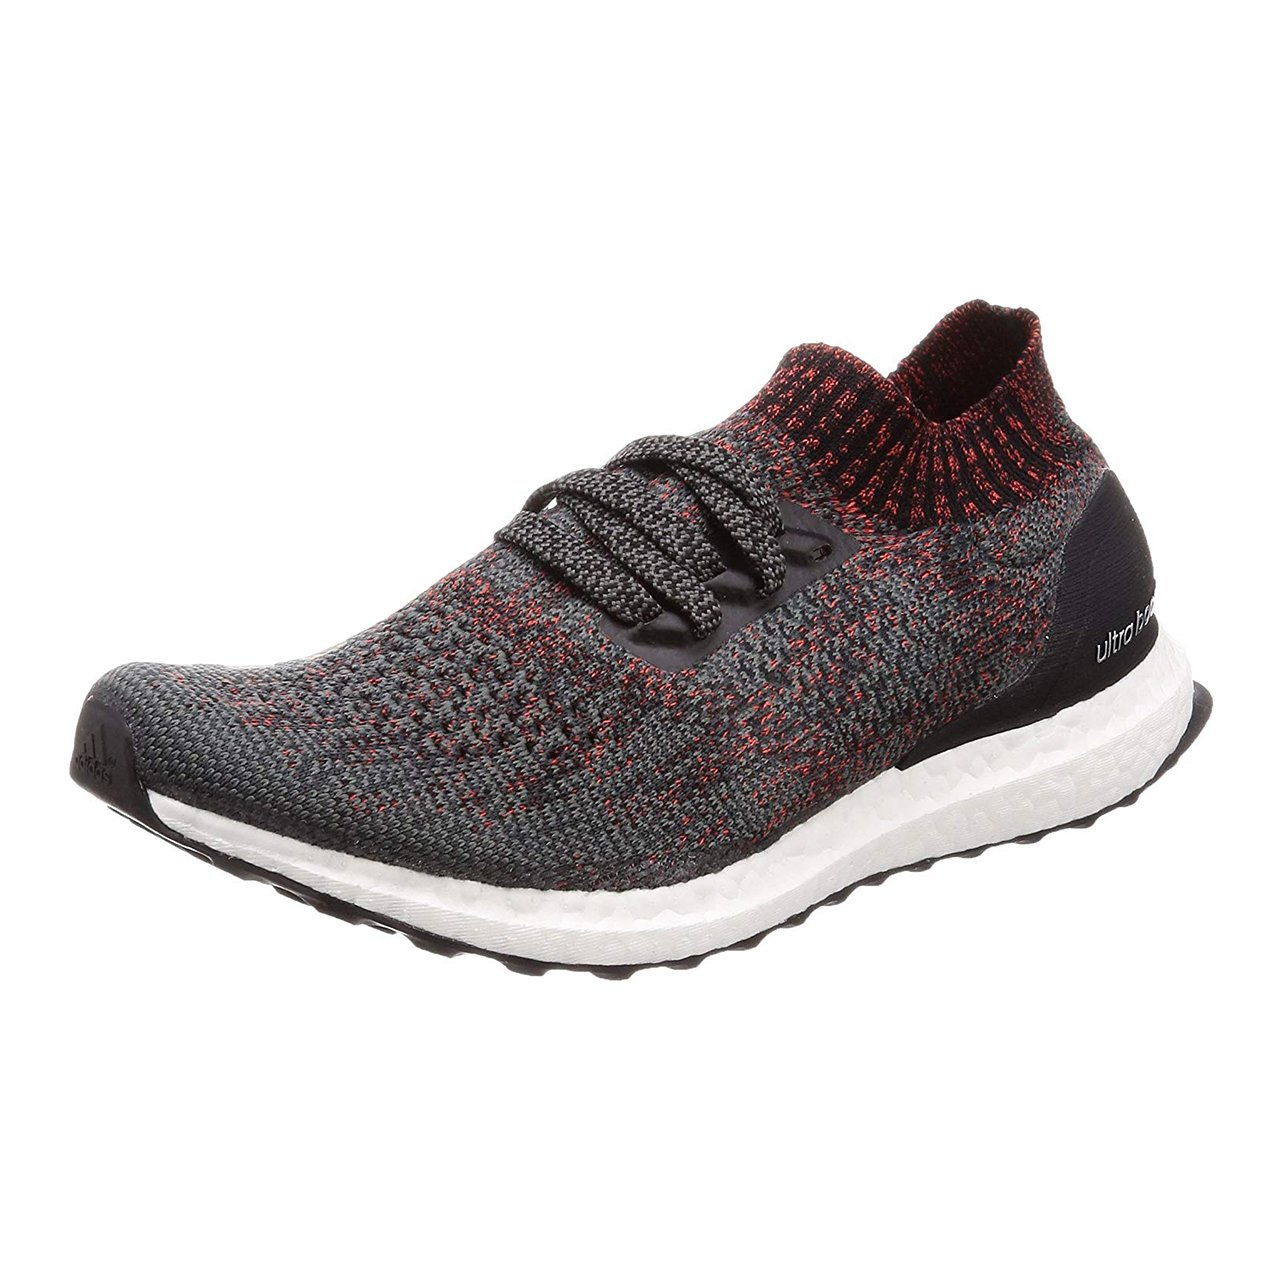 a1d8cabfc adidas ultraboost Uncaged - Running Shoes